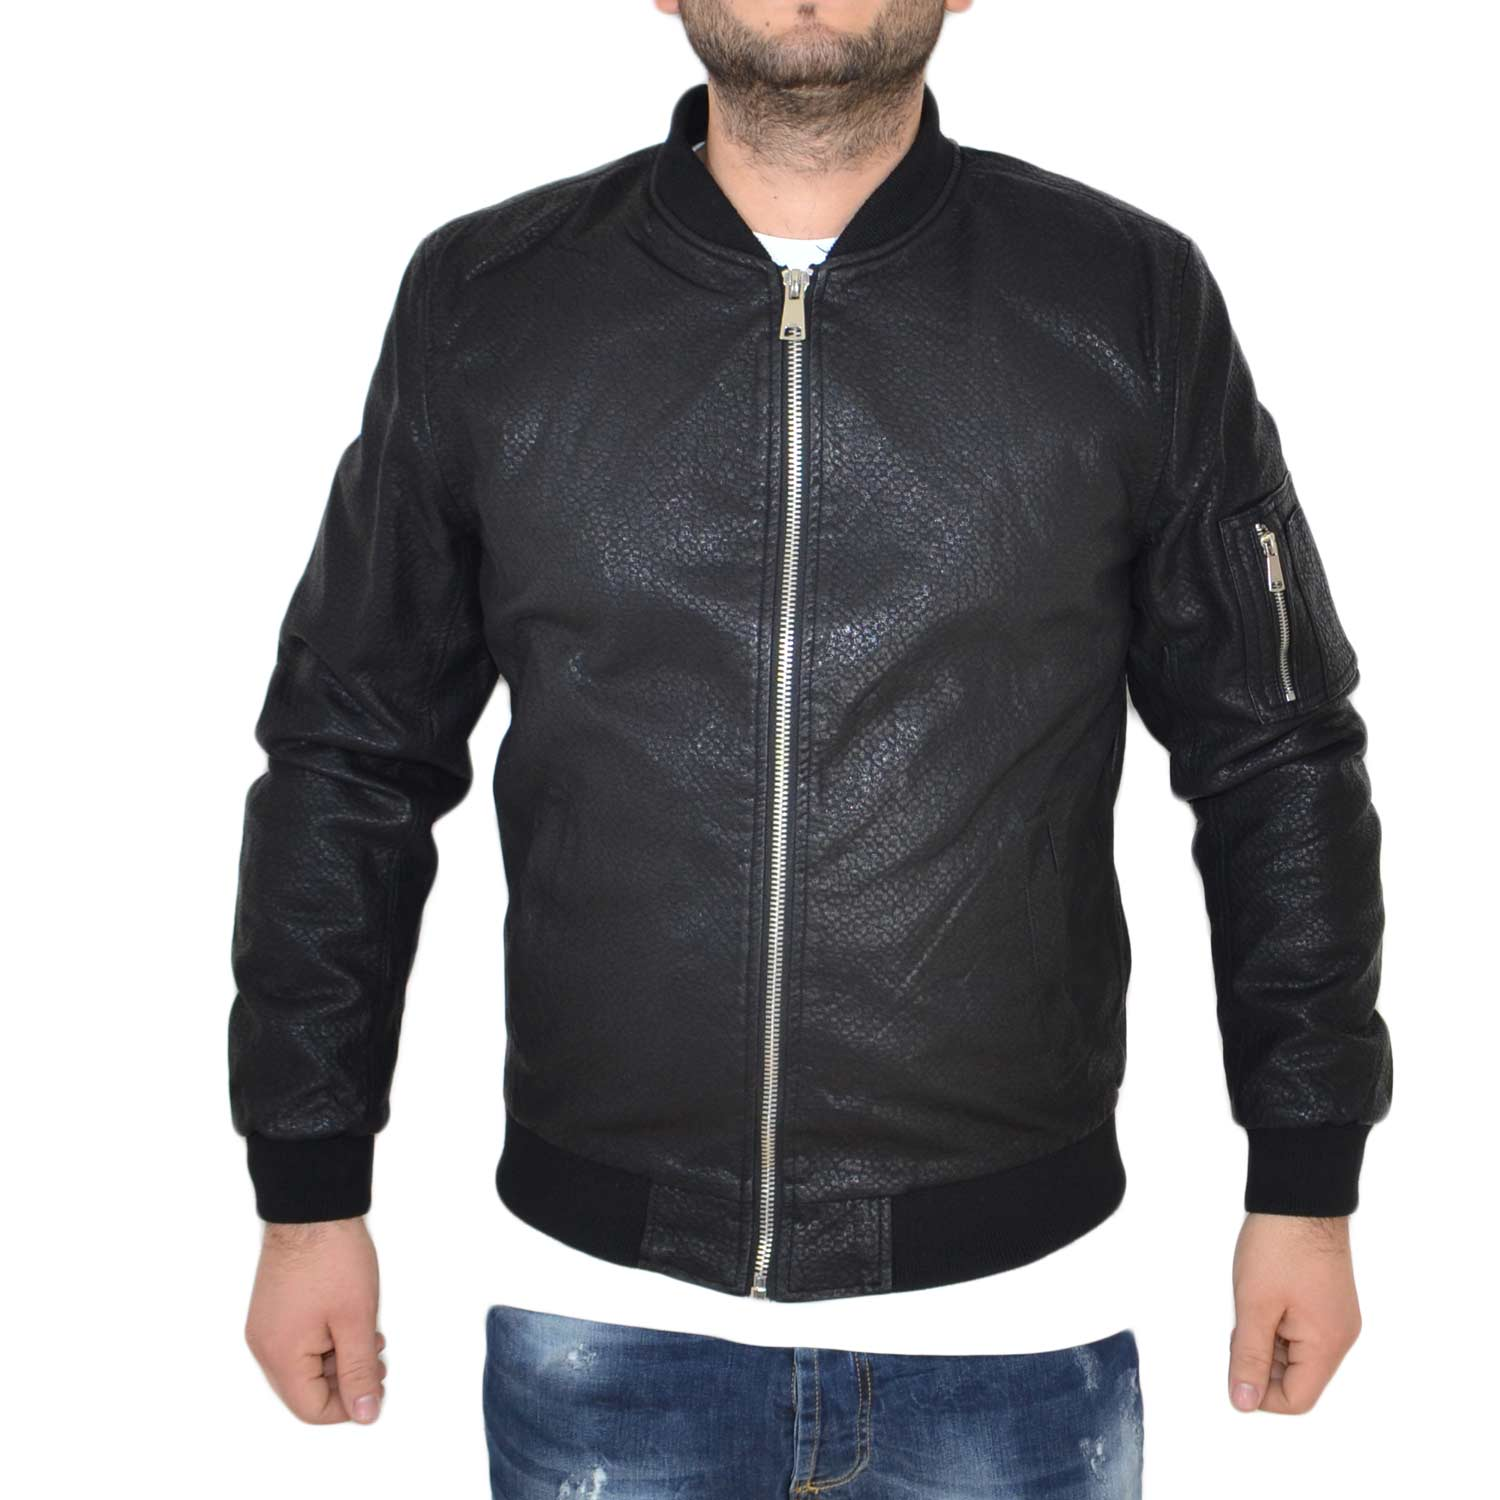 Giubbino in pelle art.2245 nero con zip made in italy moda comfort .